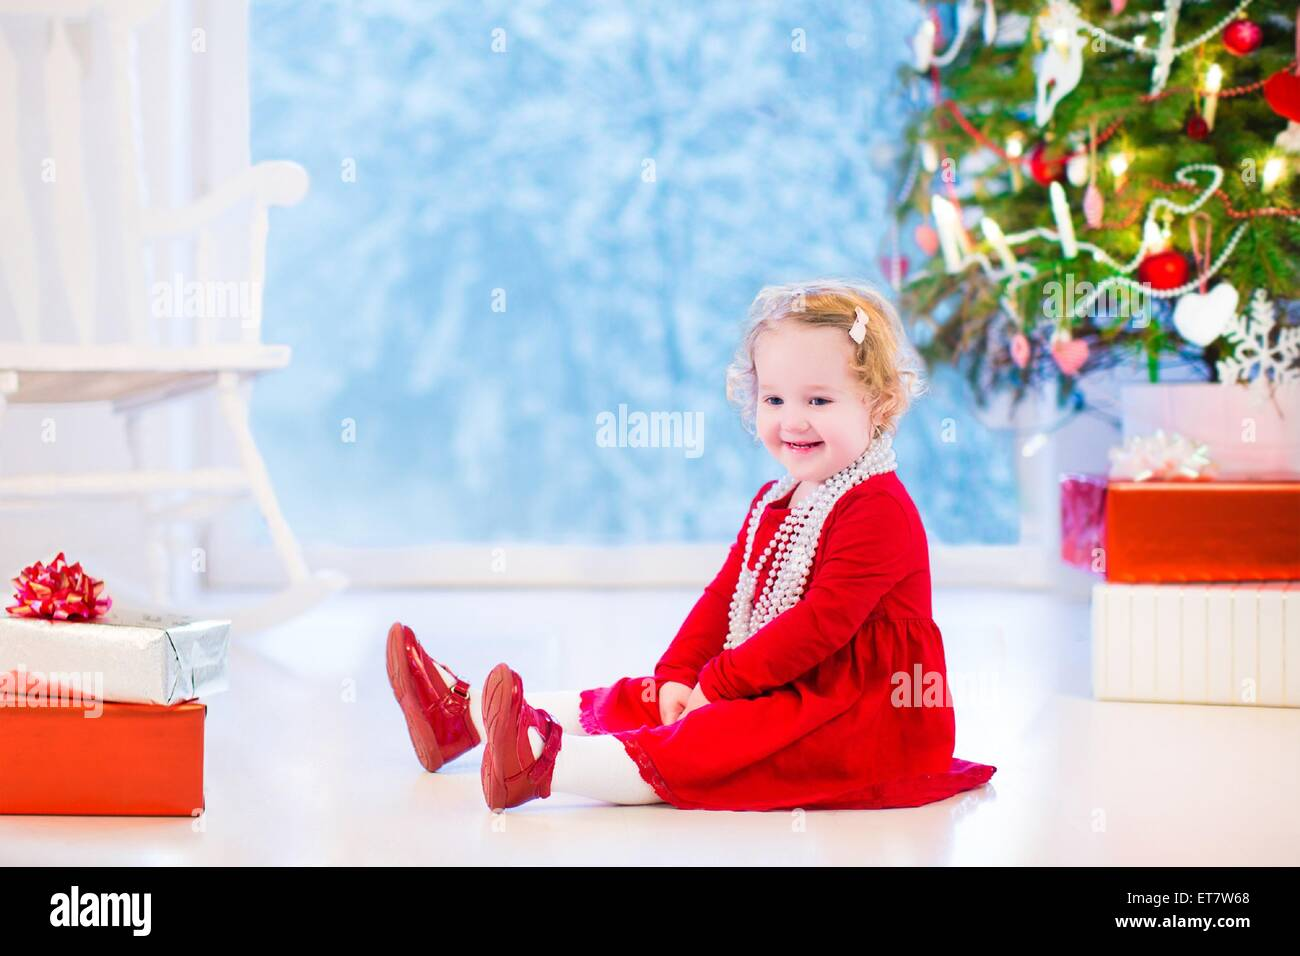 Cute curly little girl in a red dress and white pearl necklace playing under a Christmas tree with presents sitting - Stock Image